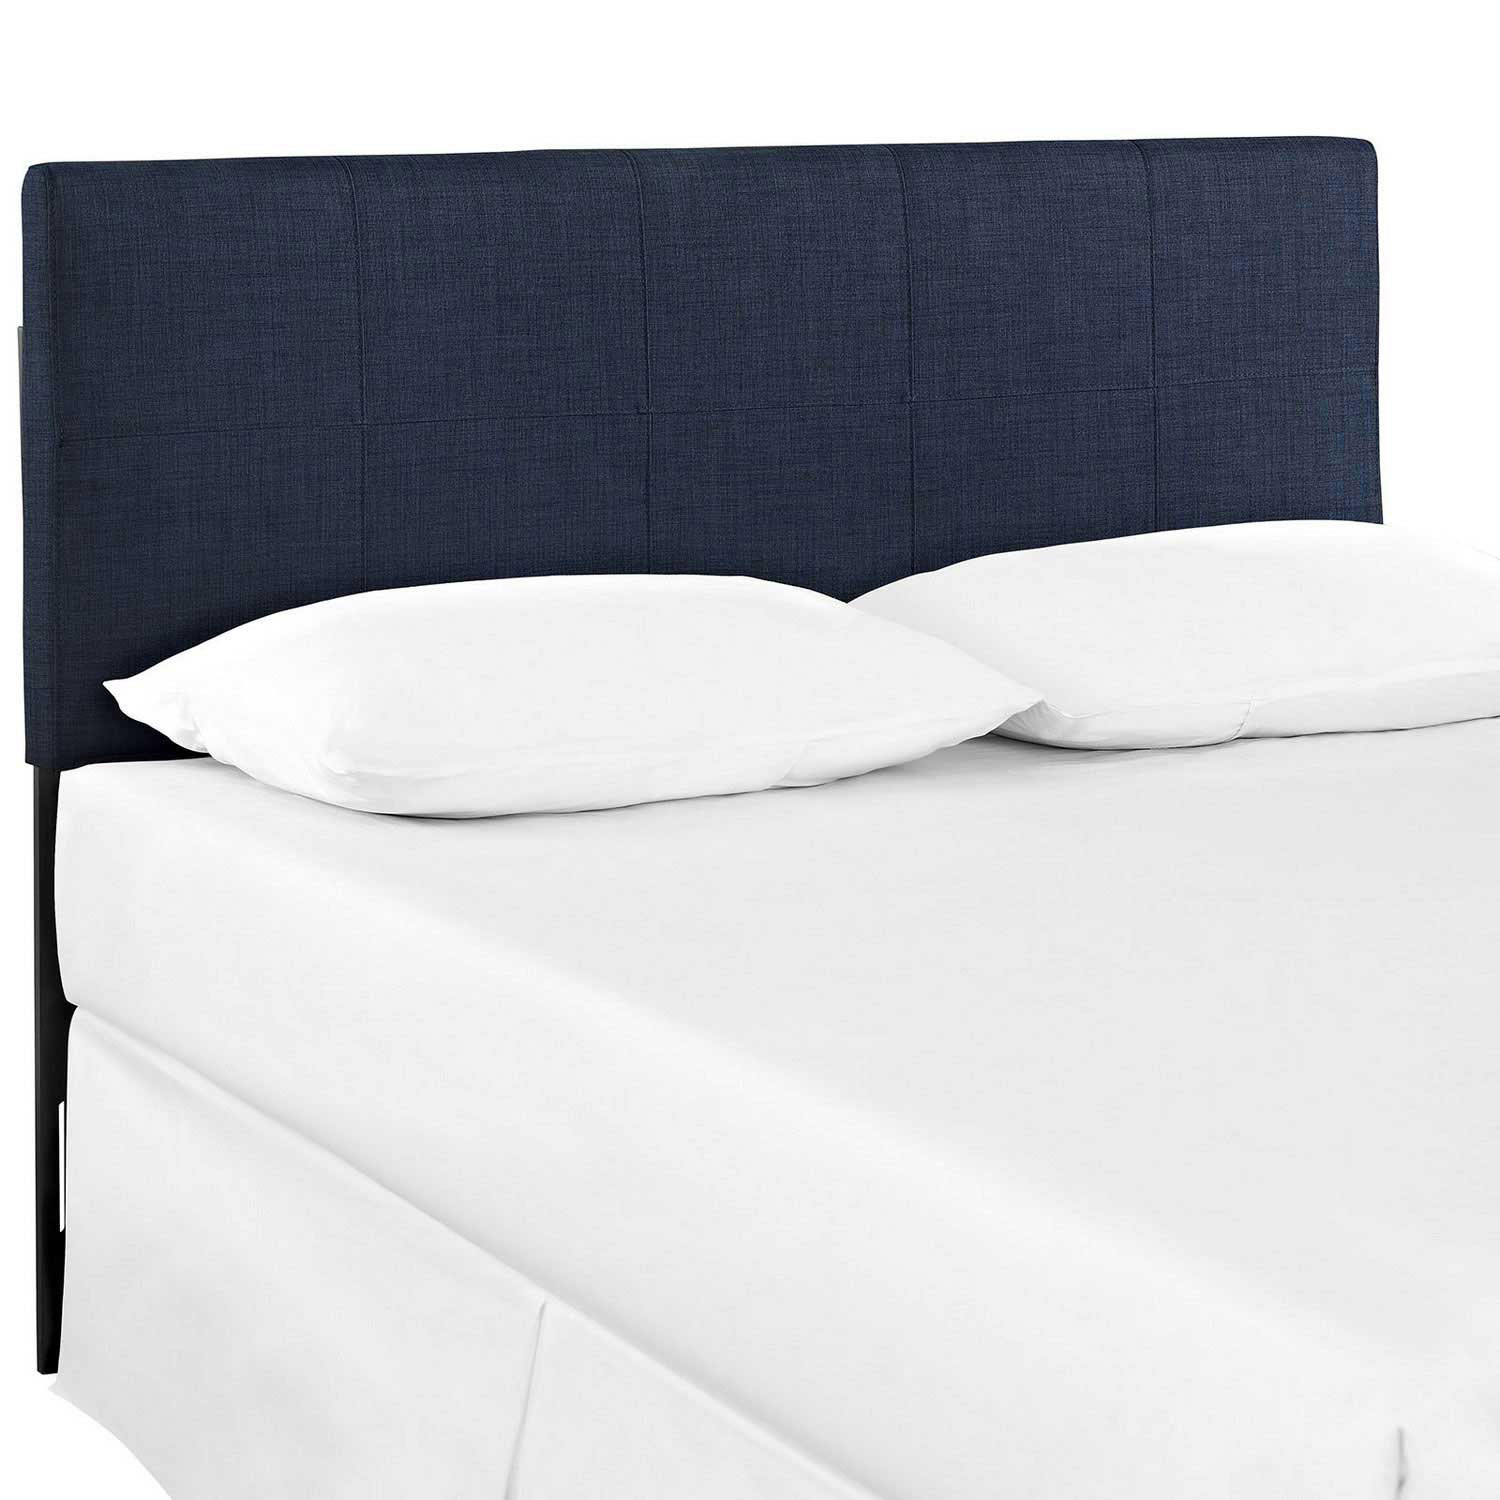 Modway Oliver Queen Fabric Headboard - Navy